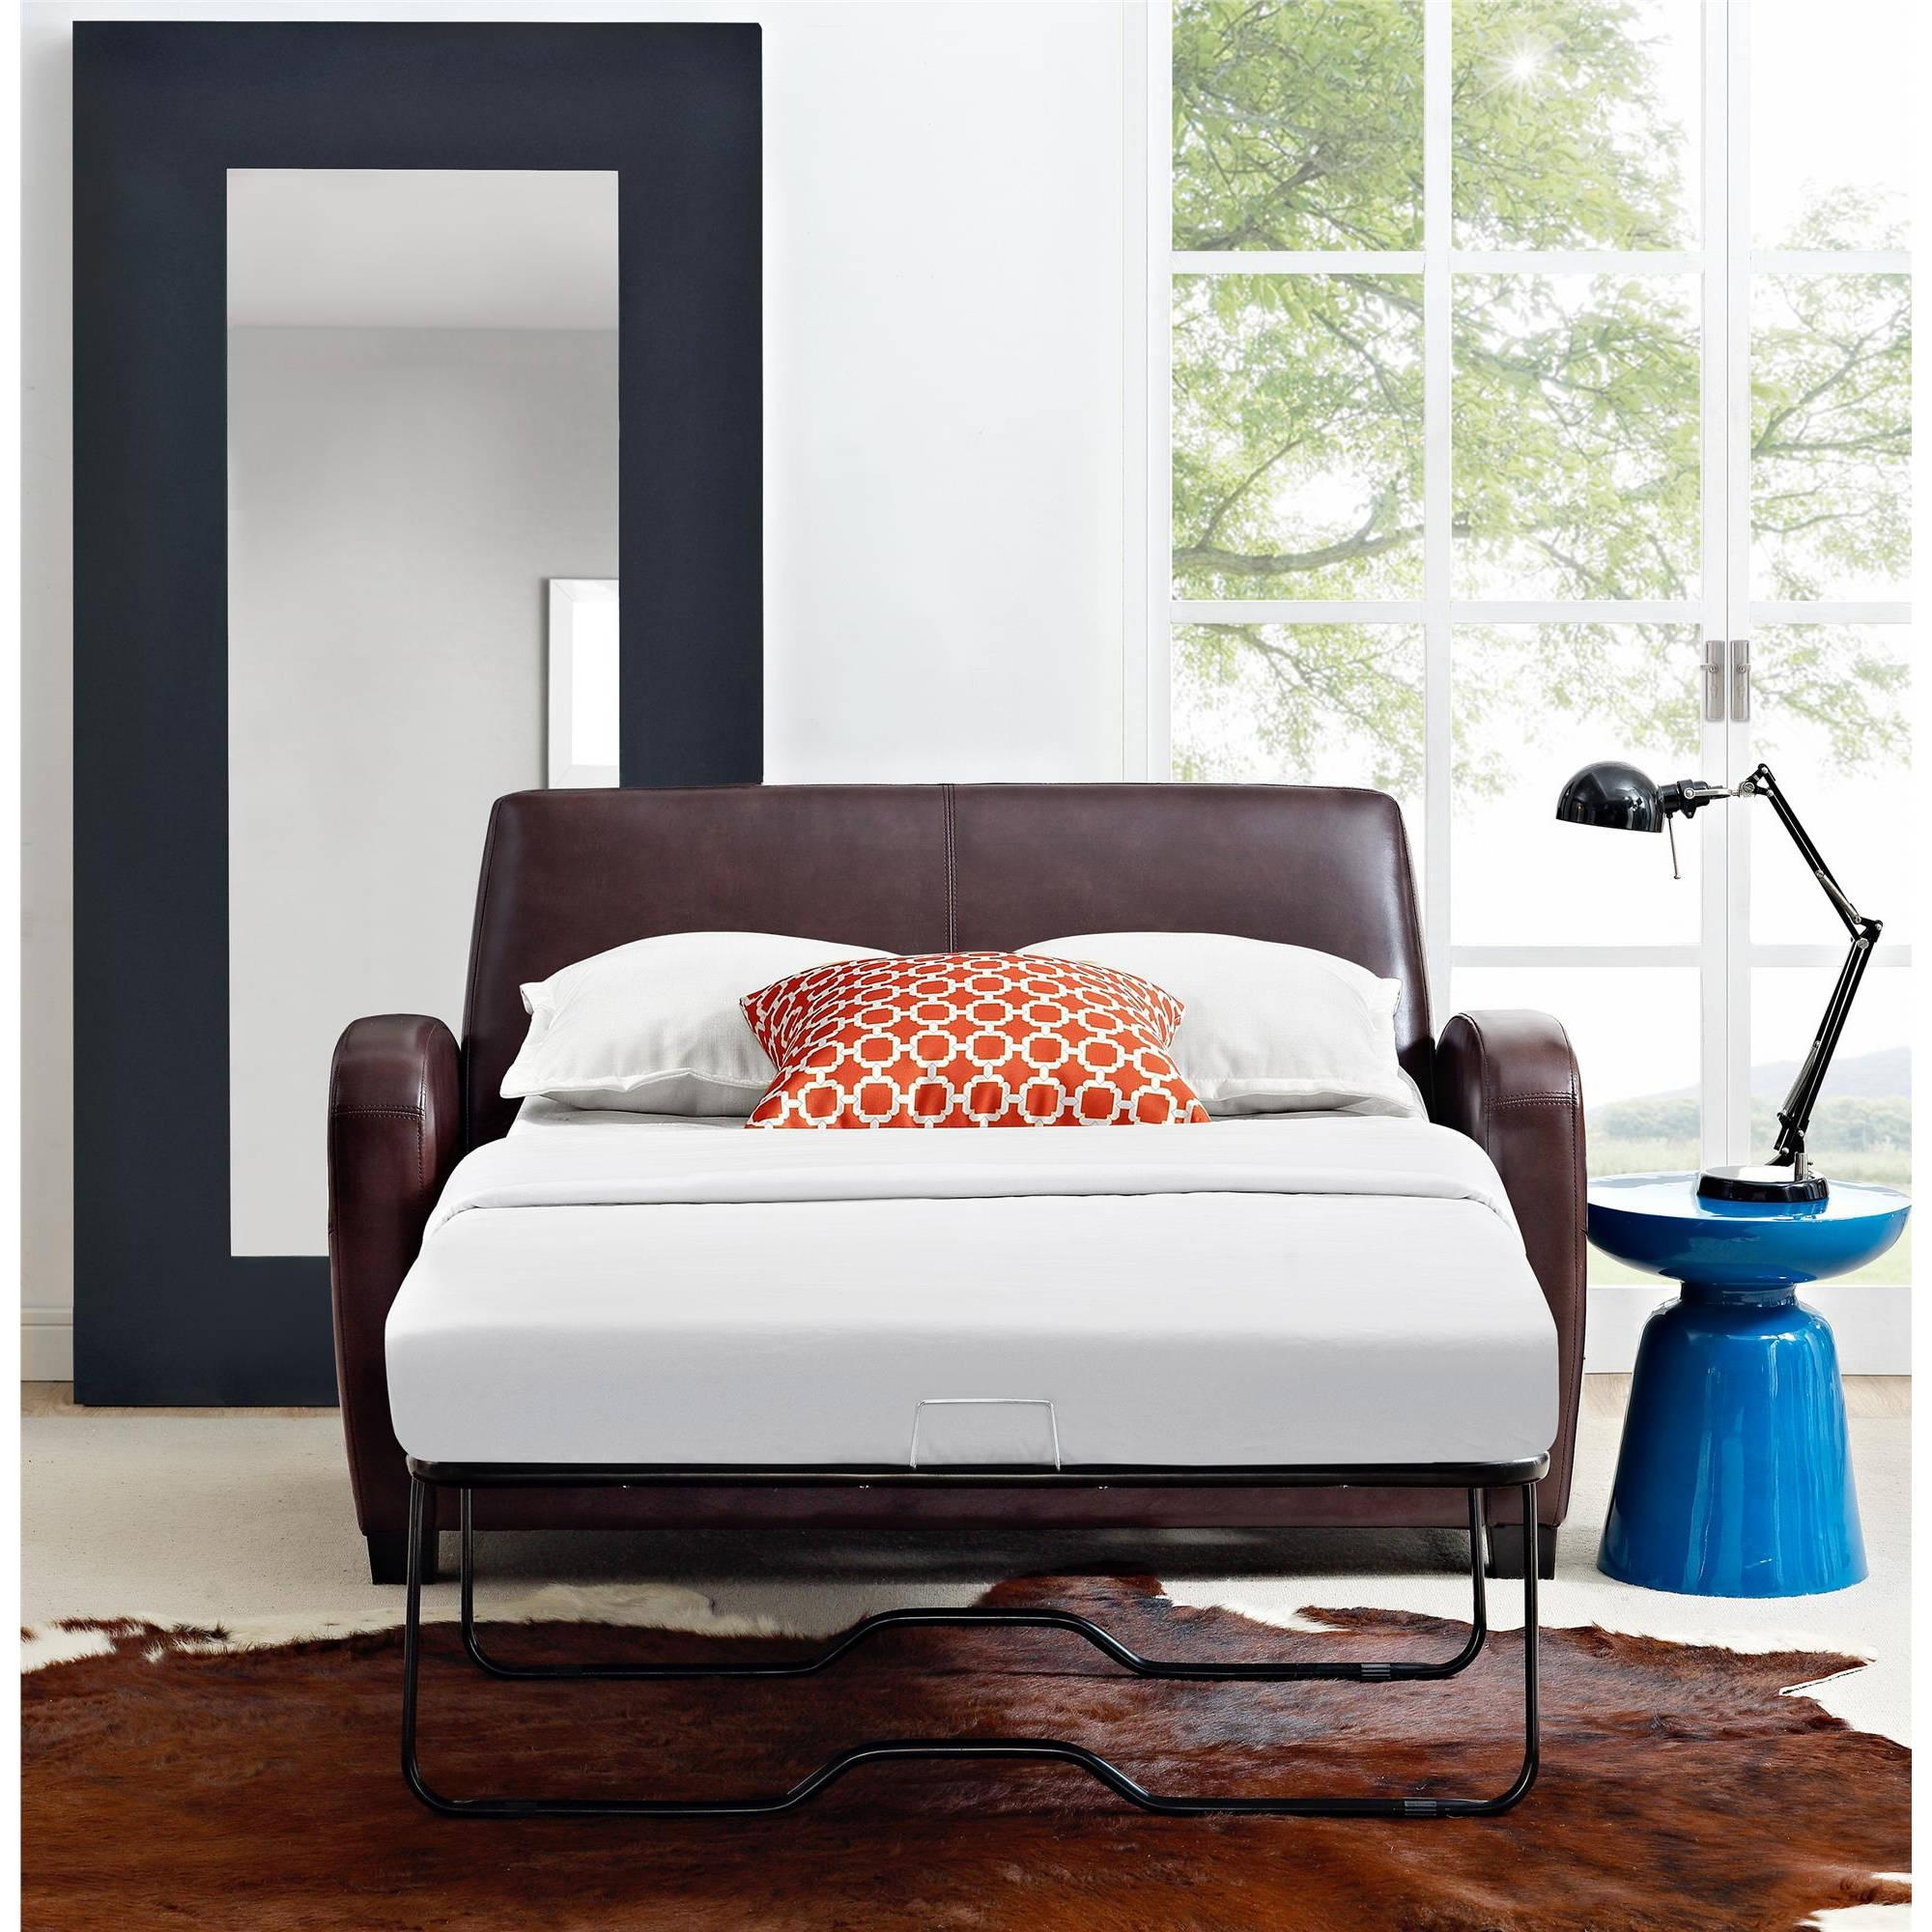 Mainstays Sofa Sleeper, Black – Walmart Throughout Mainstays Sleeper Sofas (View 4 of 20)